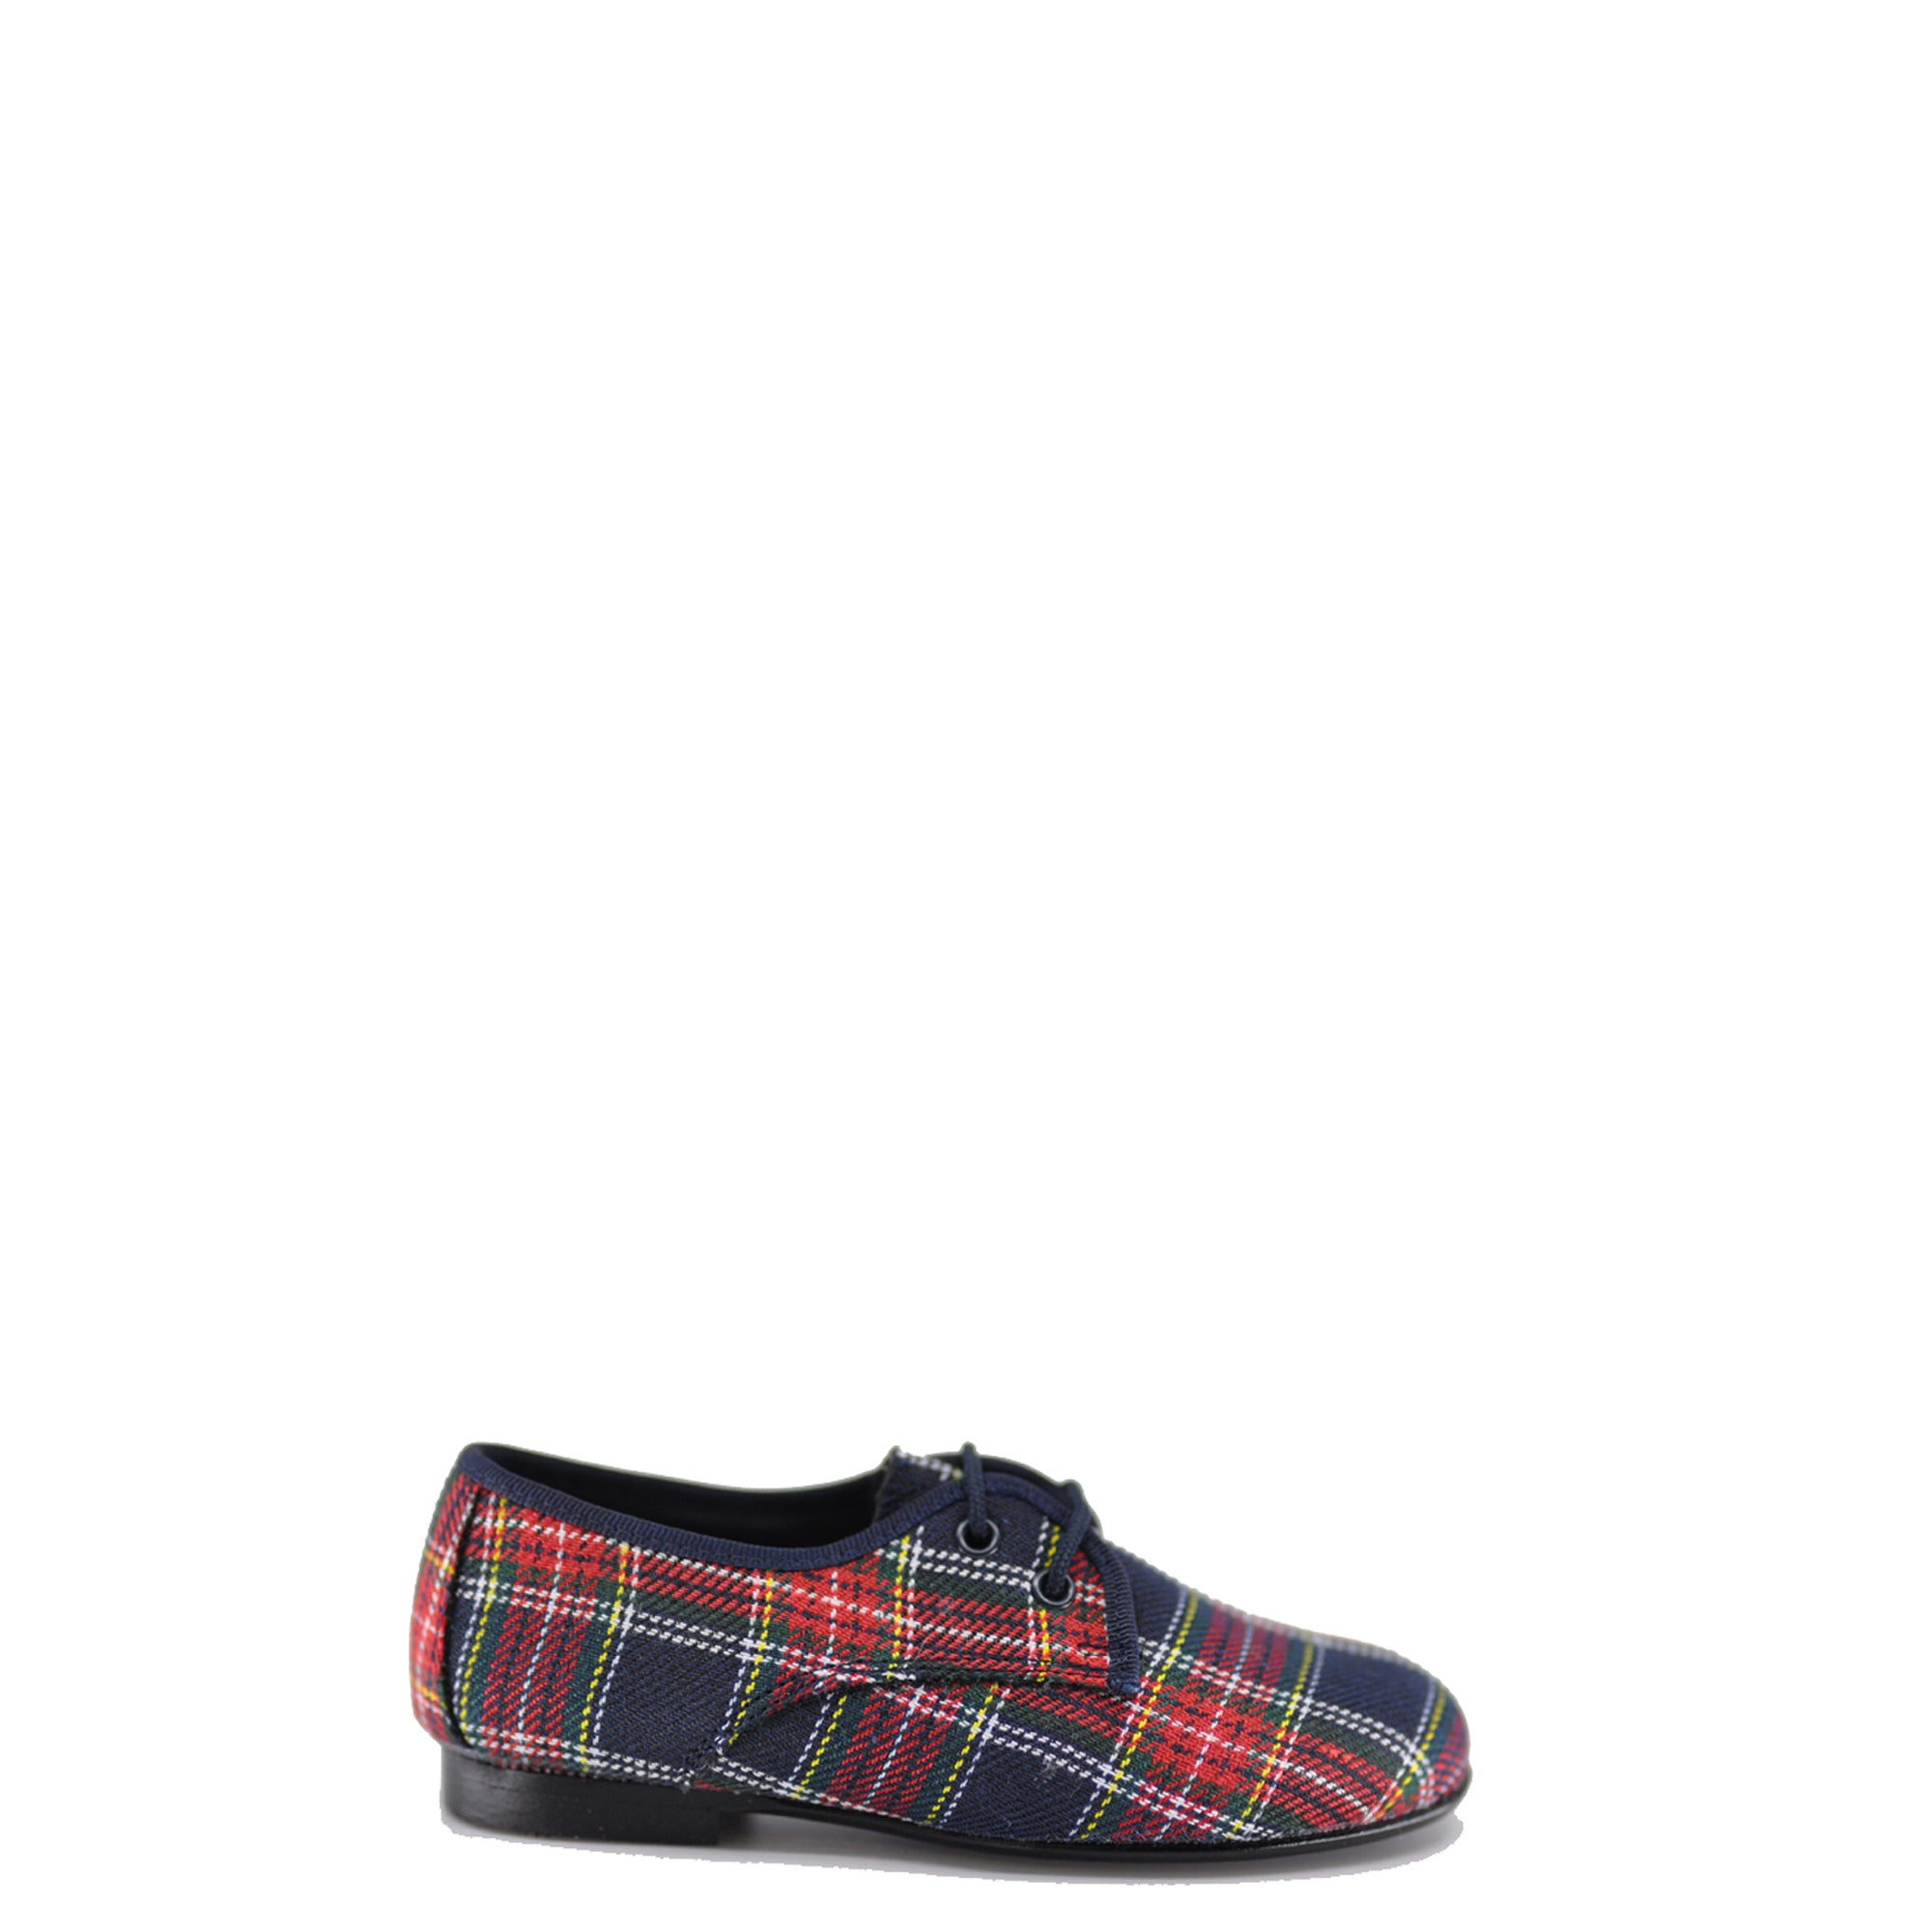 LMDI Scotland Plaid Lace-Up Shoe-Tassel Children Shoes